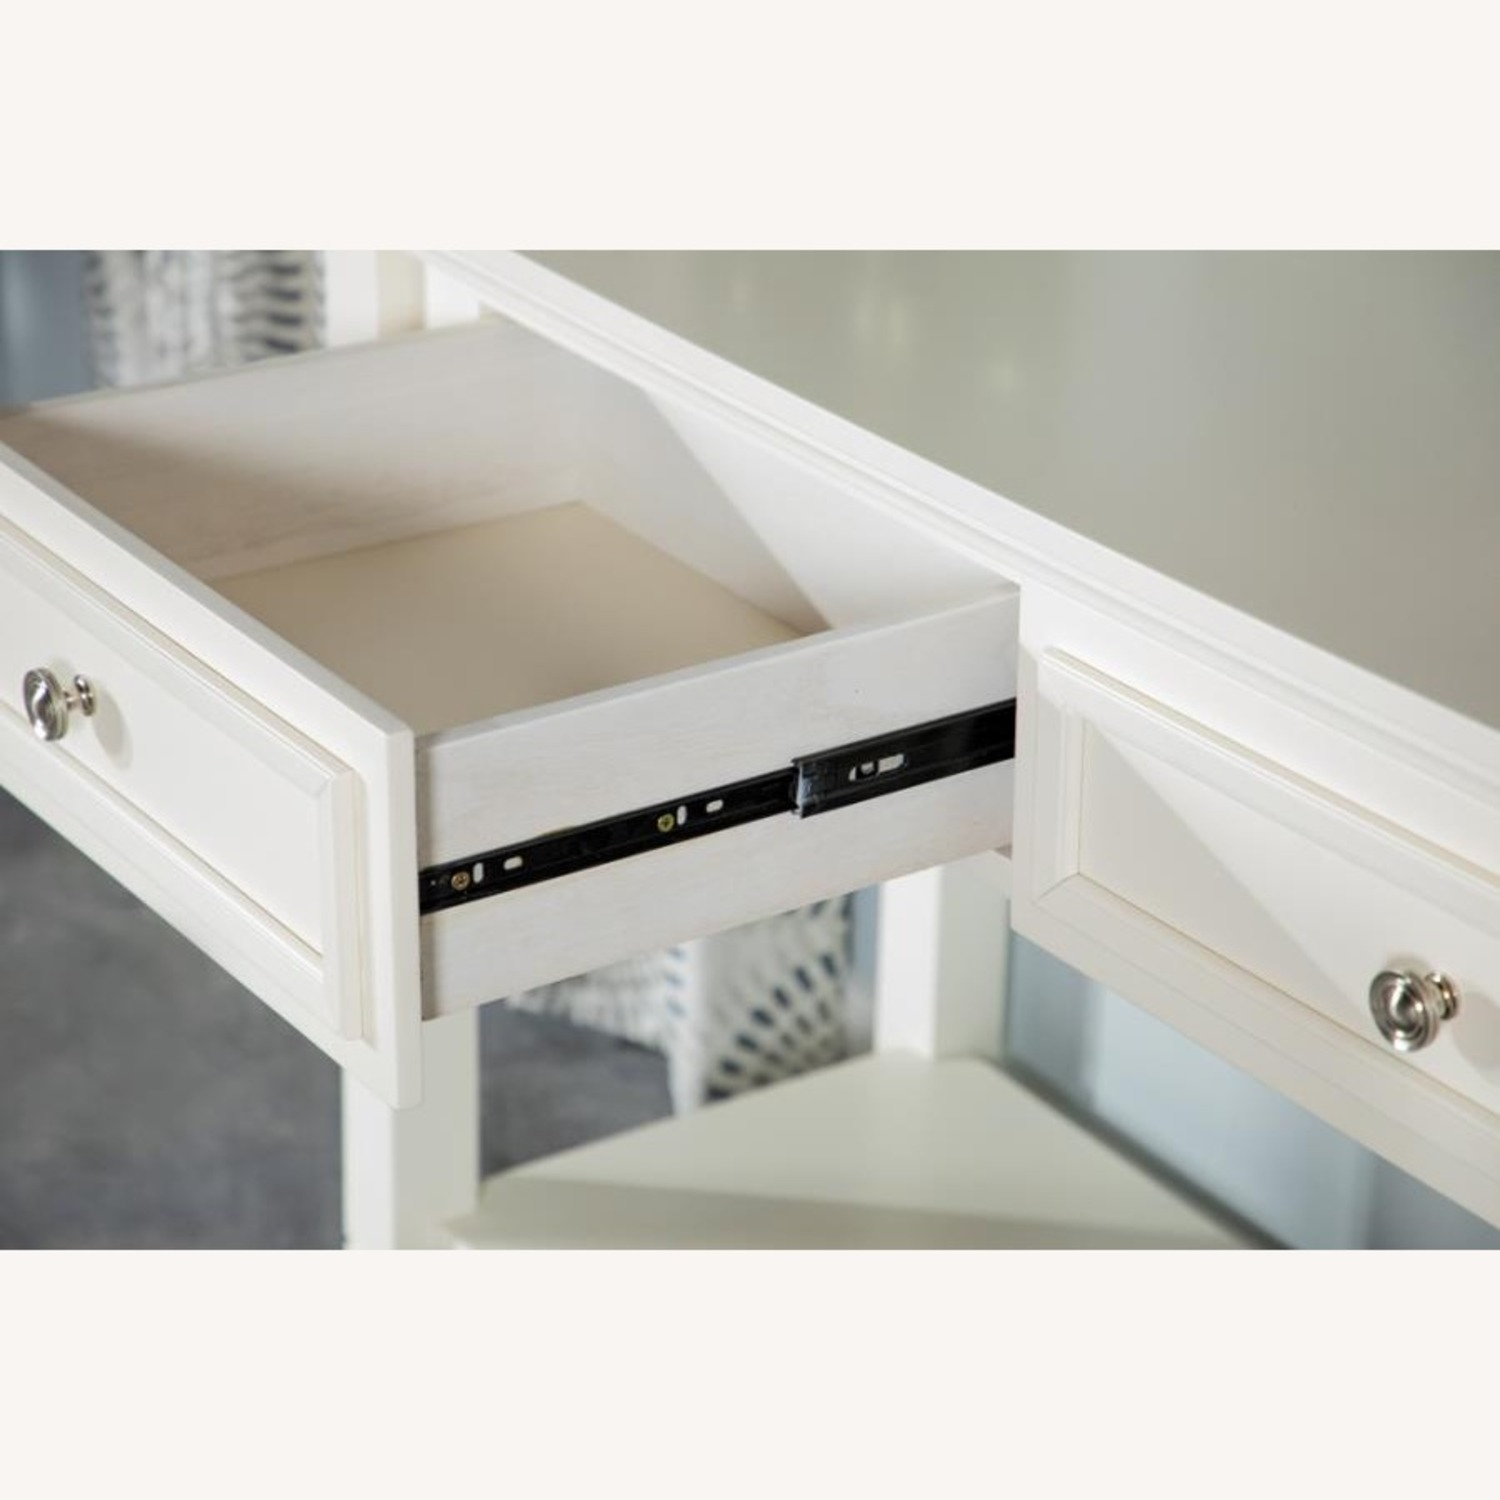 Coffee Table In Brushed Nickel W/ 2 Drawers - image-1